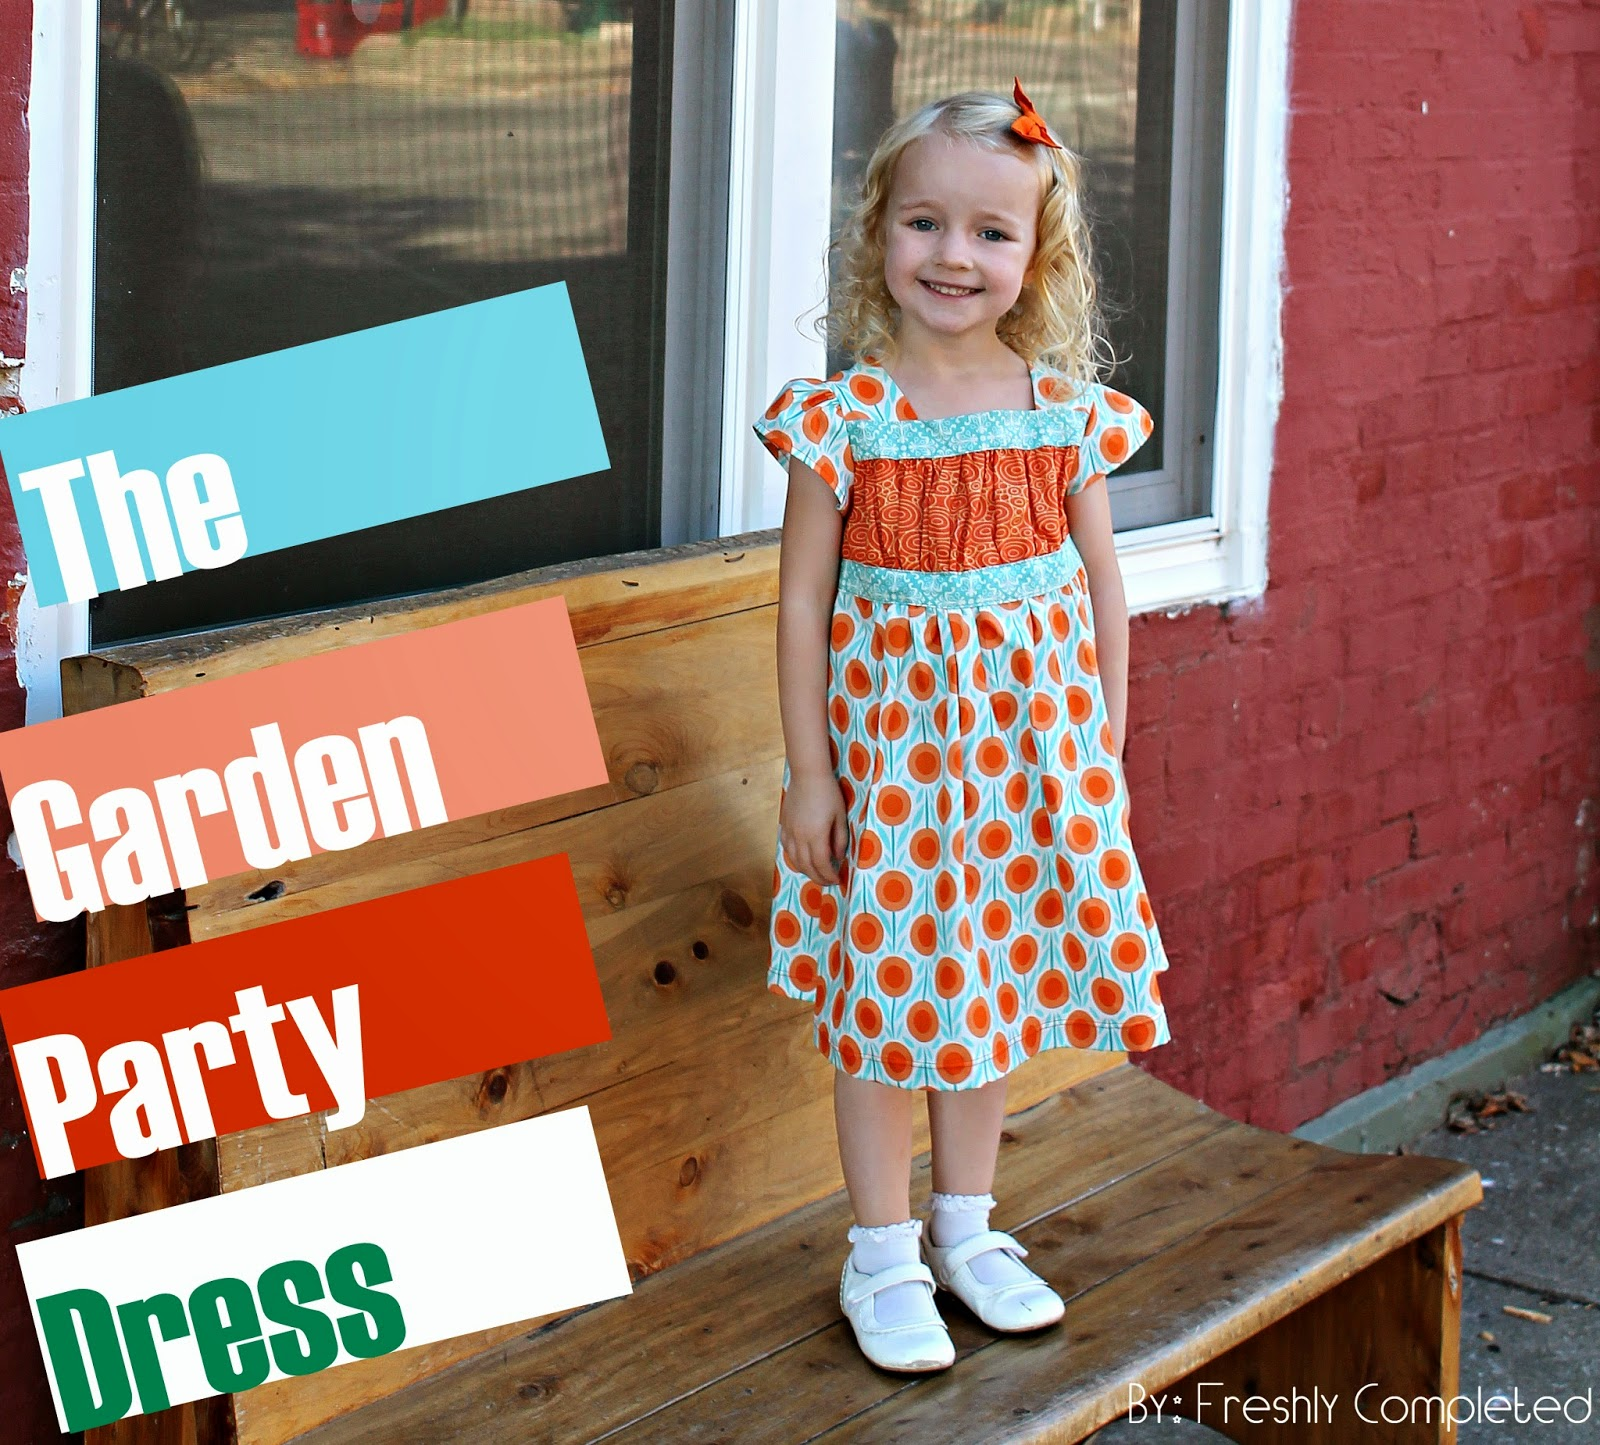 Cute Backyard Party Outfits : As previously mentioned this cute girl had a special birthday last